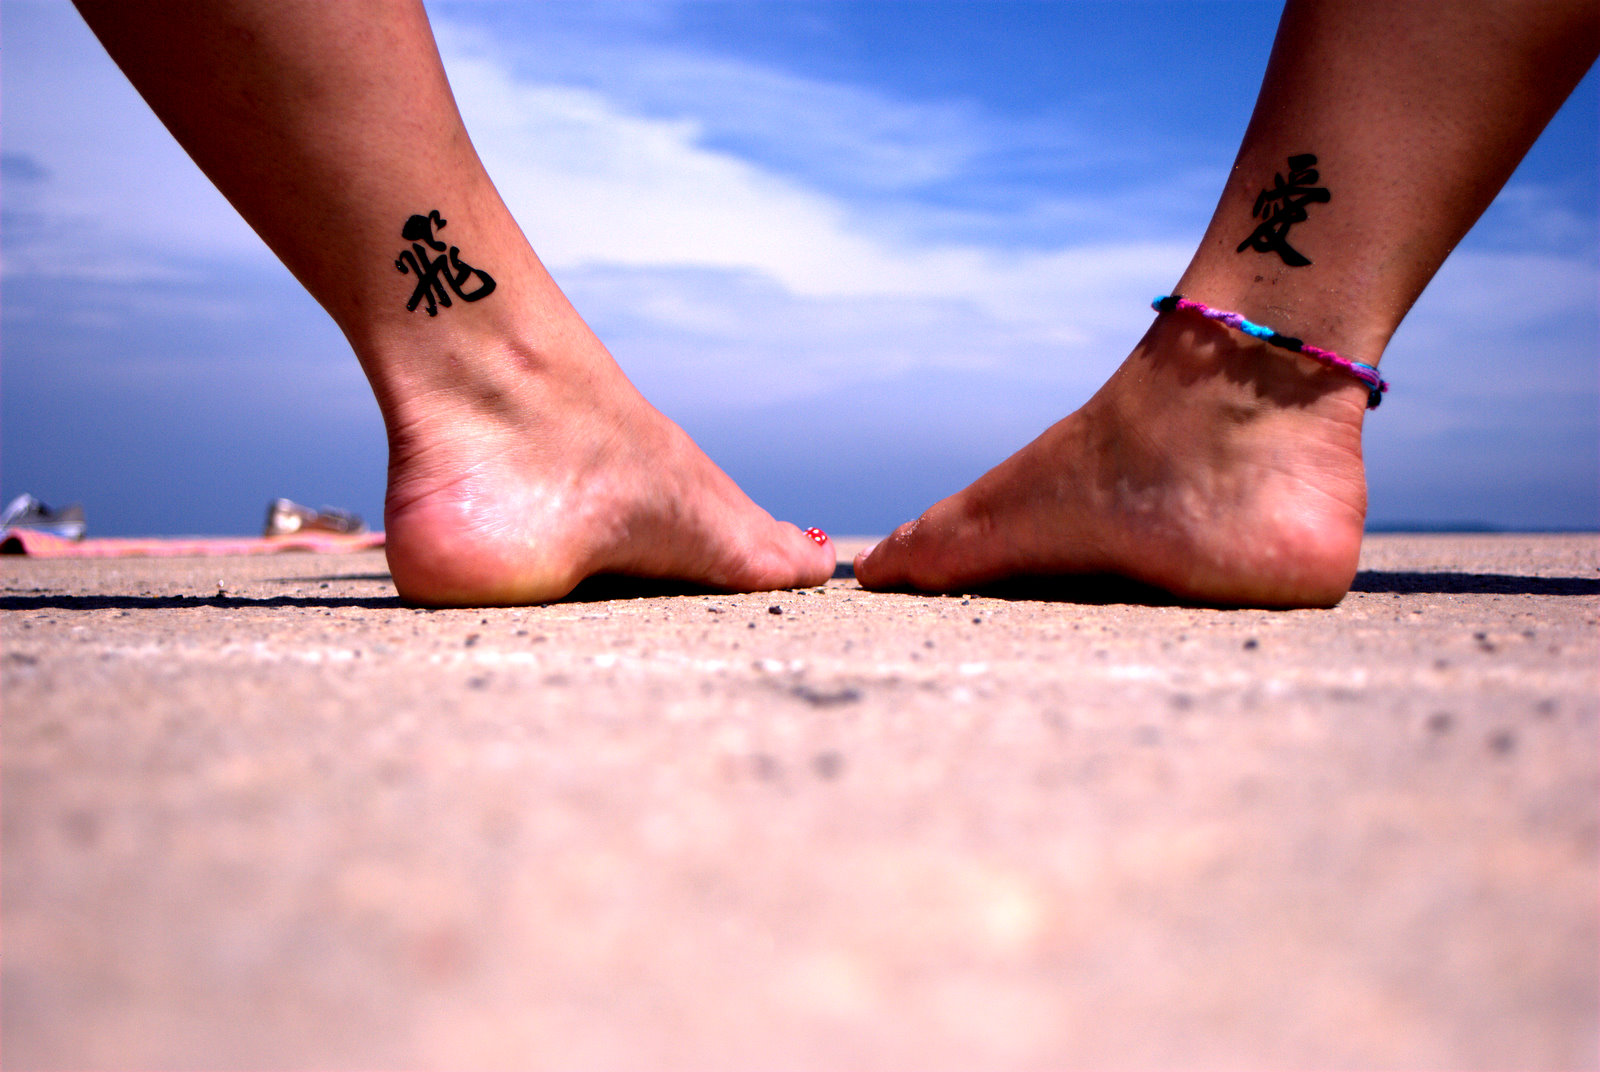 Sister tattoos designs ideas and meaning tattoos for you sister tattoo ideas biocorpaavc Choice Image